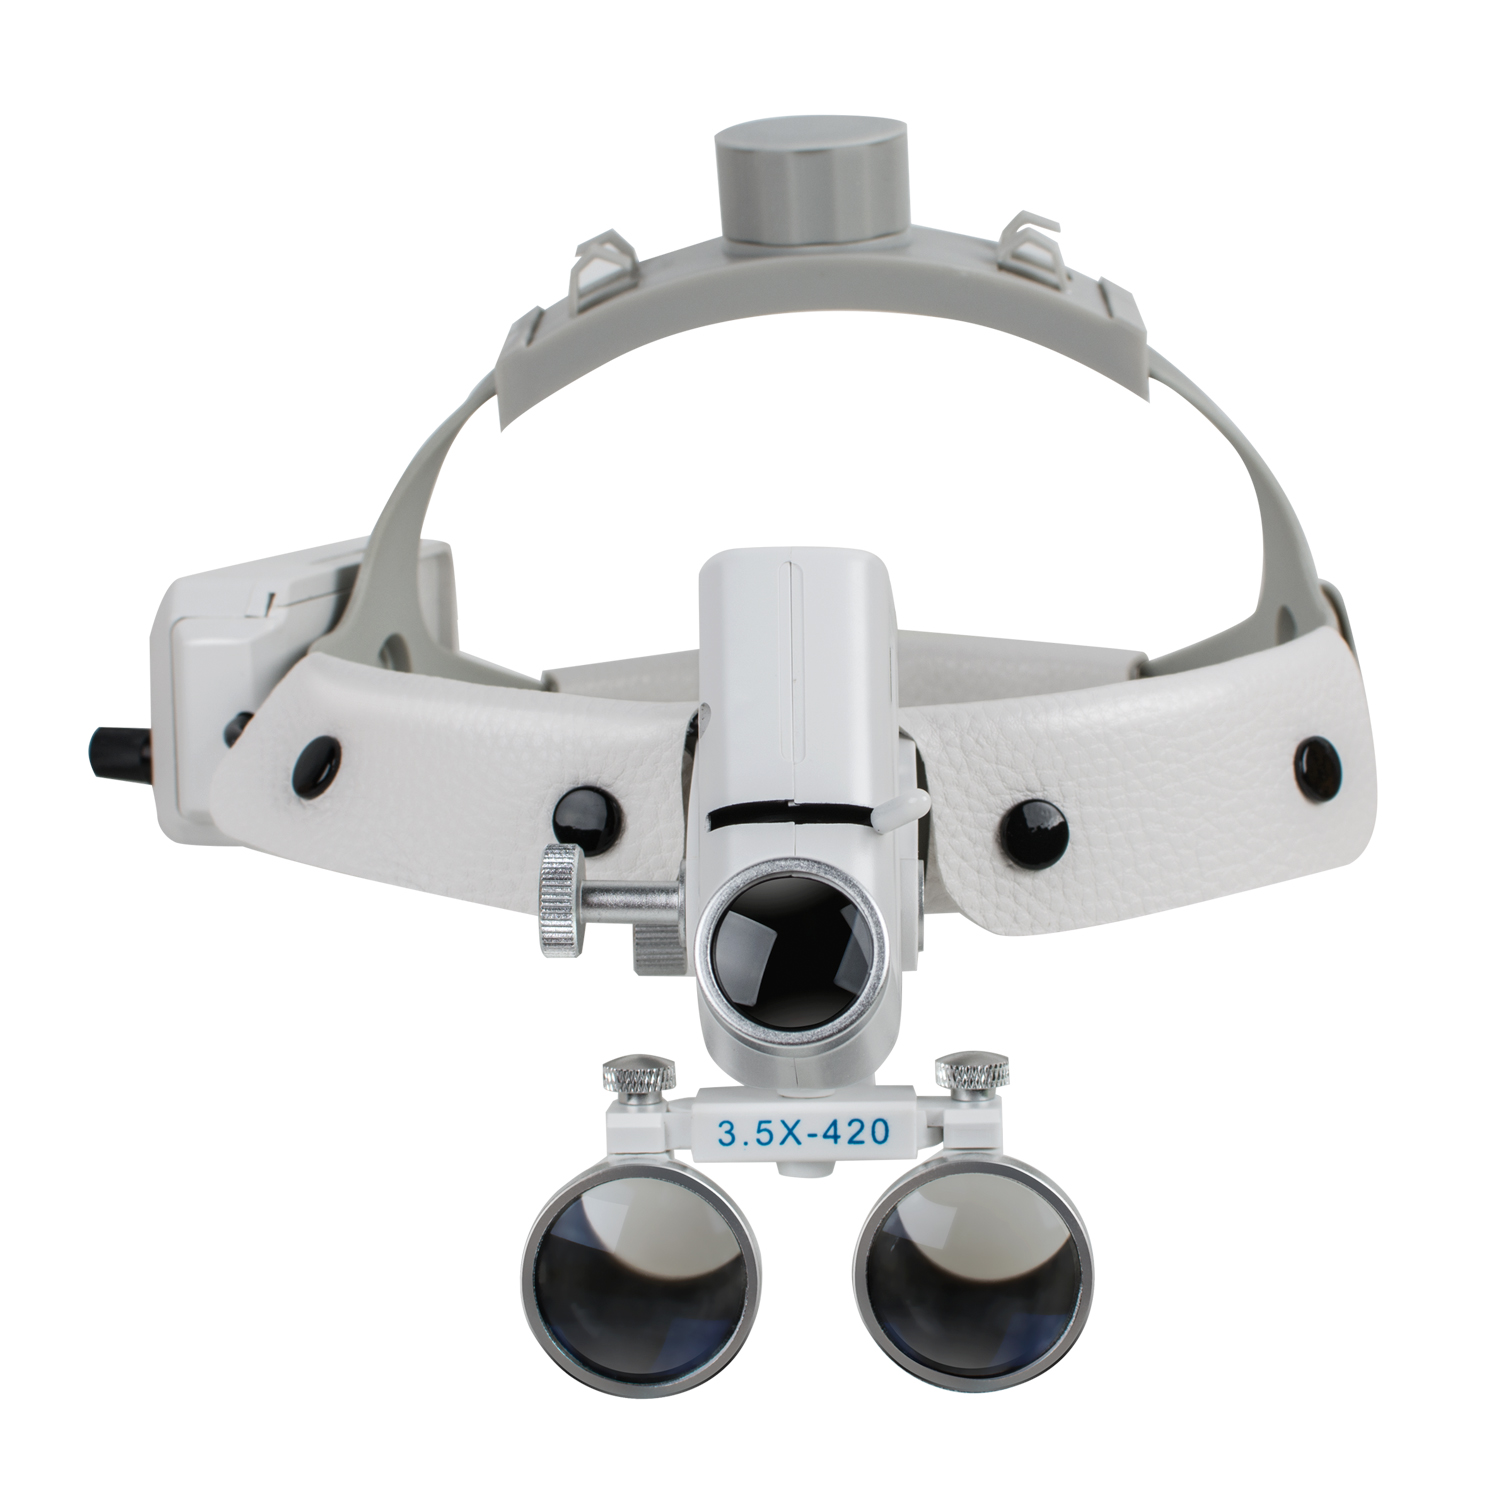 3.5X420mm Dental Magnify High Intensity Led Light Surgical Magnifier Surgeon Operation Medical Enlarger Clinical Dental Loupes image